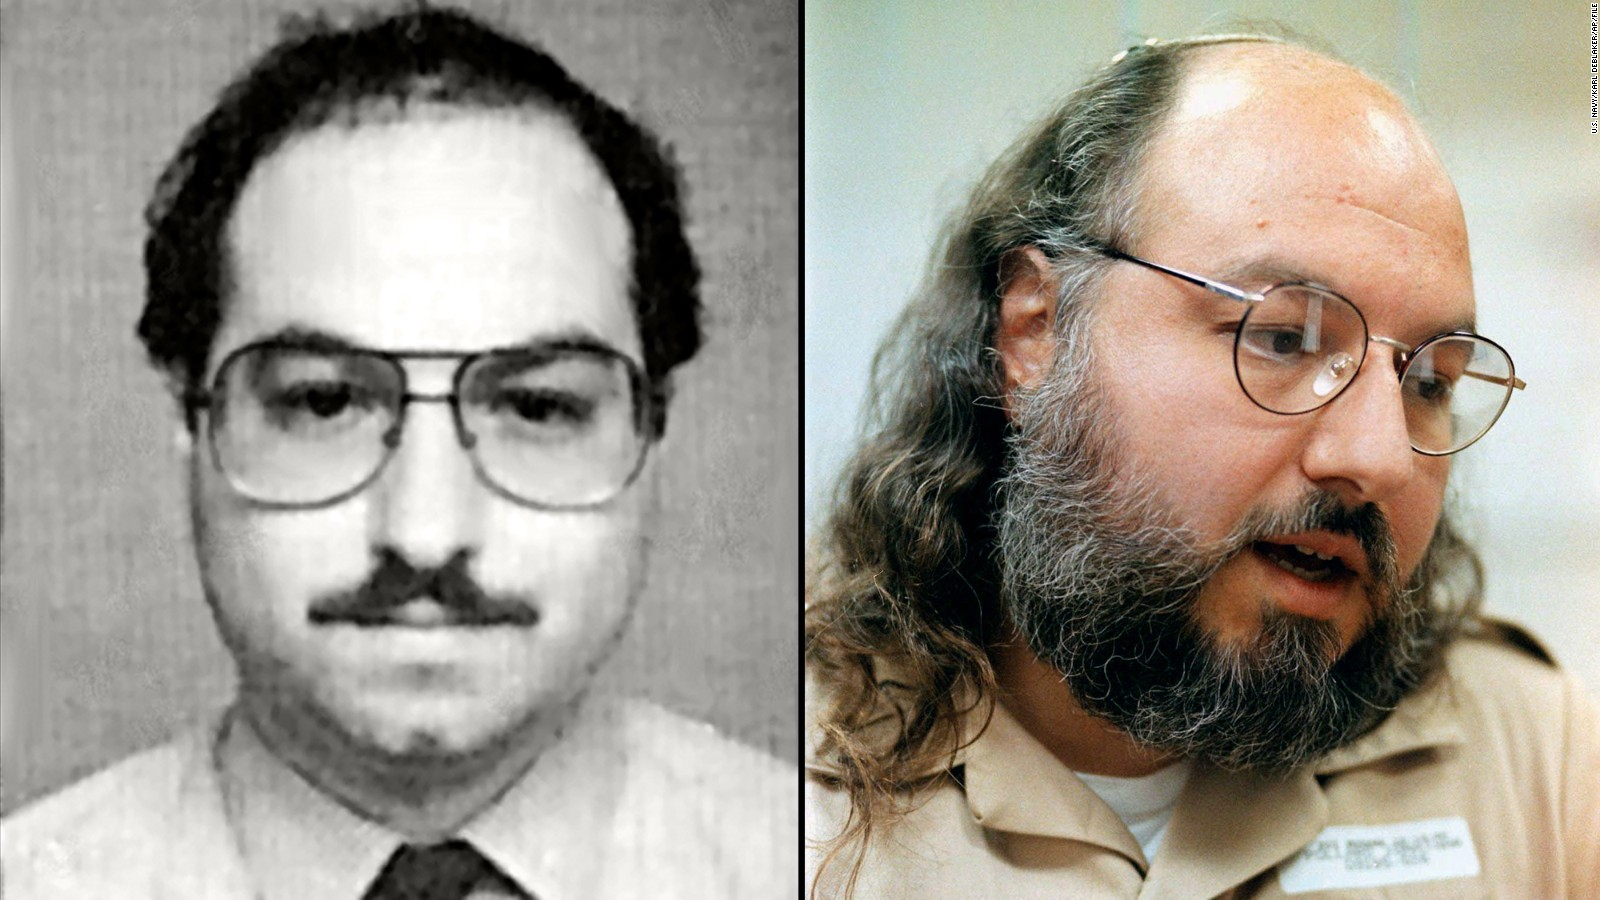 Convicted Israel spy Pollard being released after 30 years - CNN